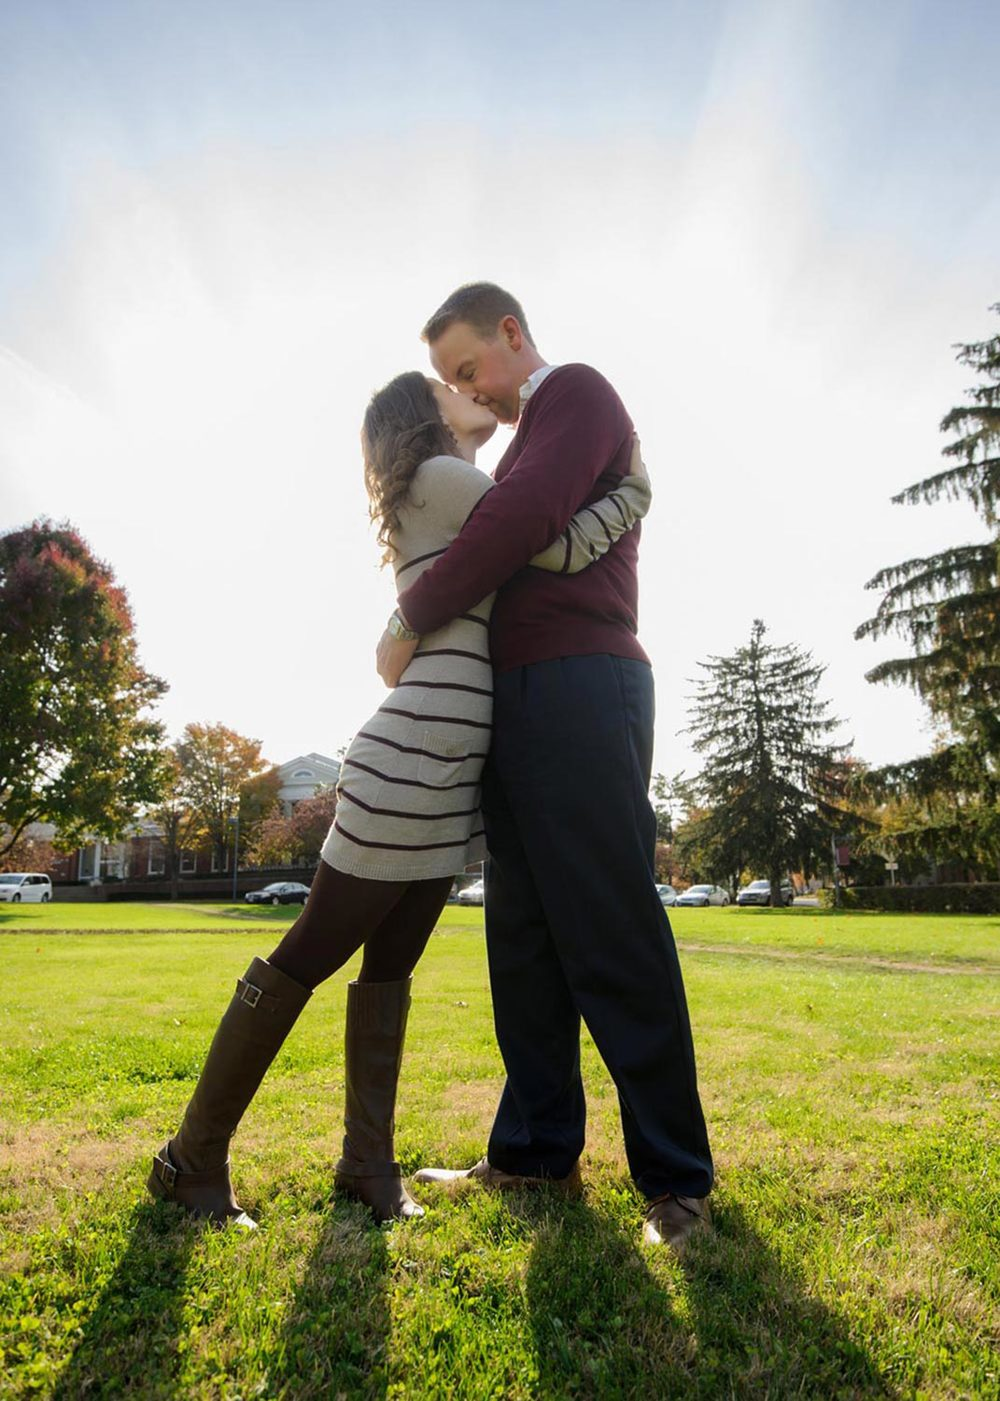 engagement_photographer_nicholasville_ky05_01.jpg